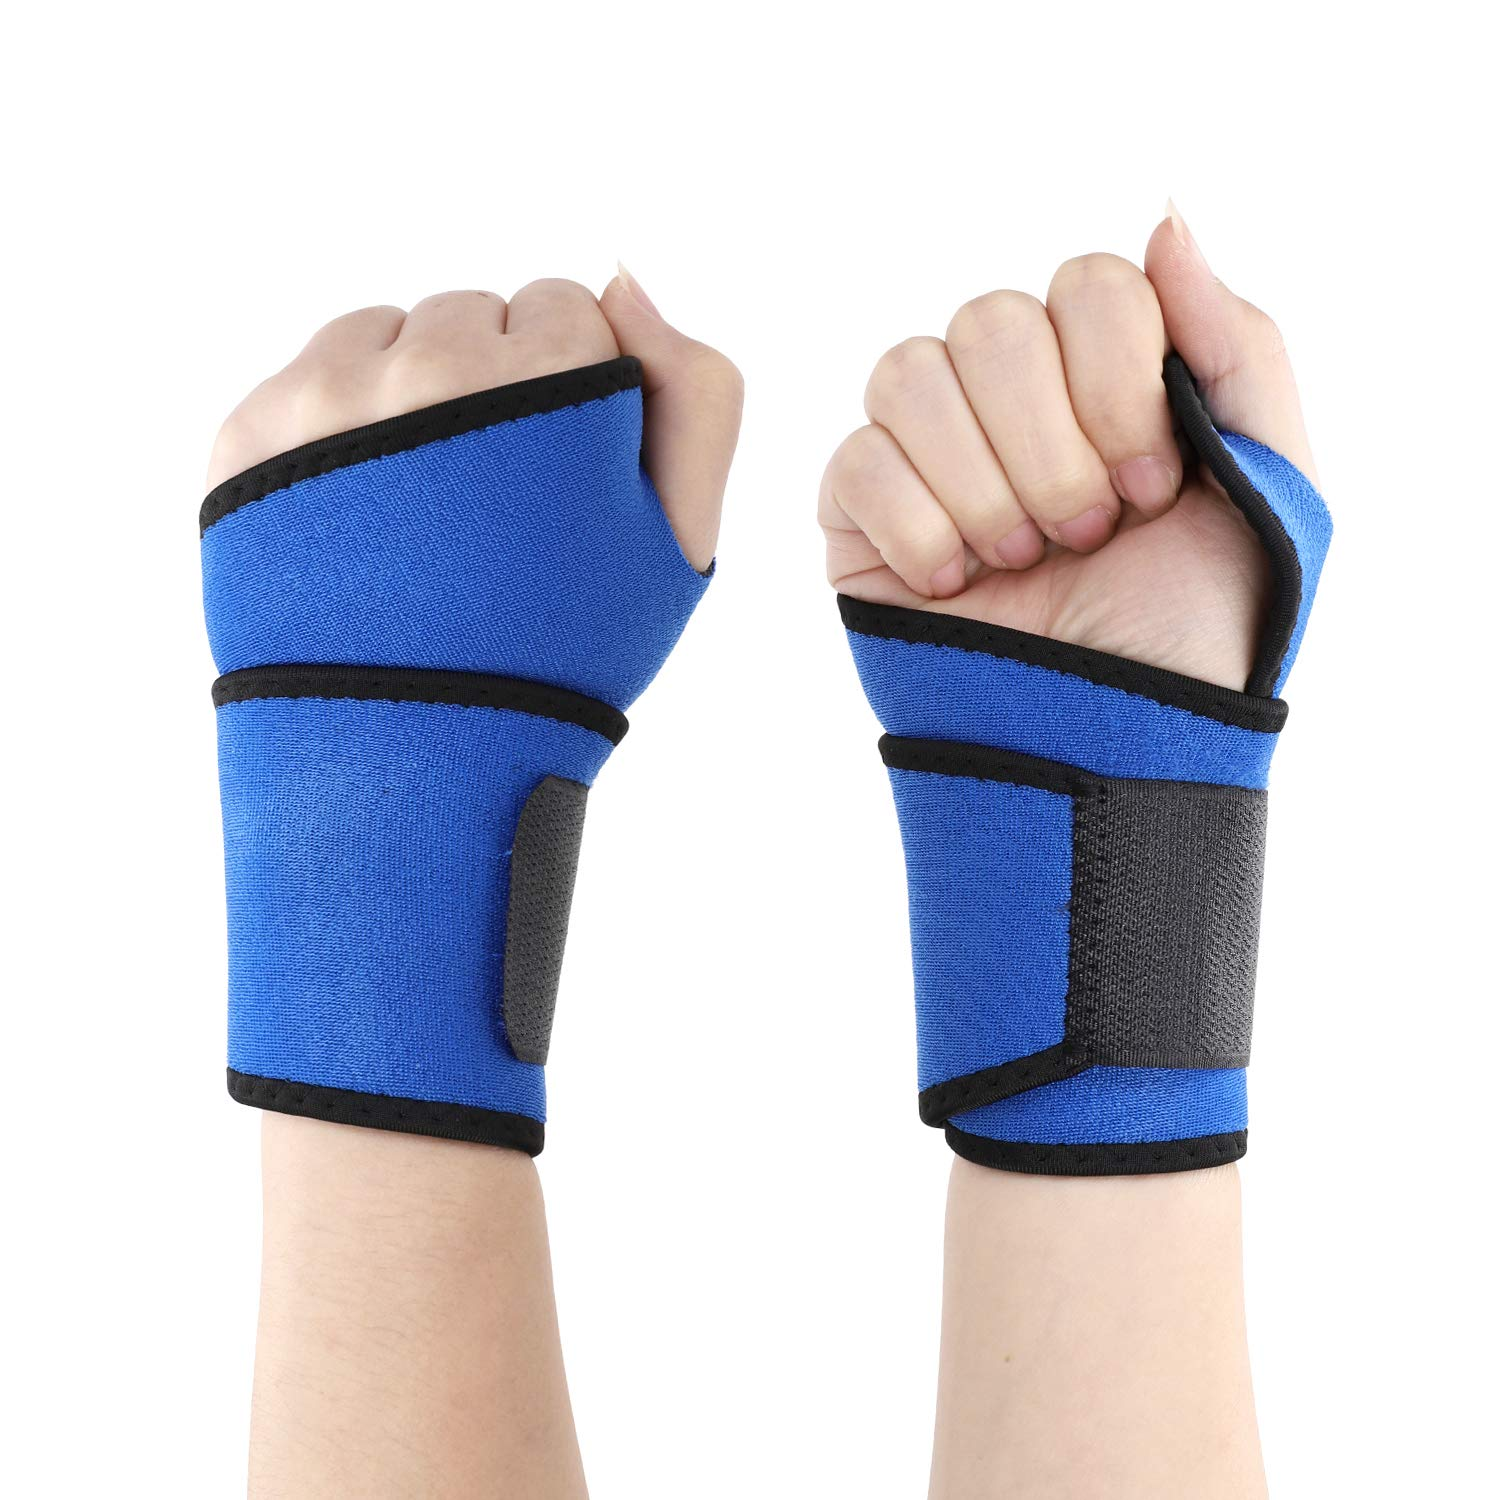 Wrist Band Support Sleeve Wrist Support Strap Adjustable Wrist Wraps Sports Bandage Carpal Tunnel Compression Strap Elastic Breathable Weight Lifting Straps Wrist Brace for Men Women Gym Fitness